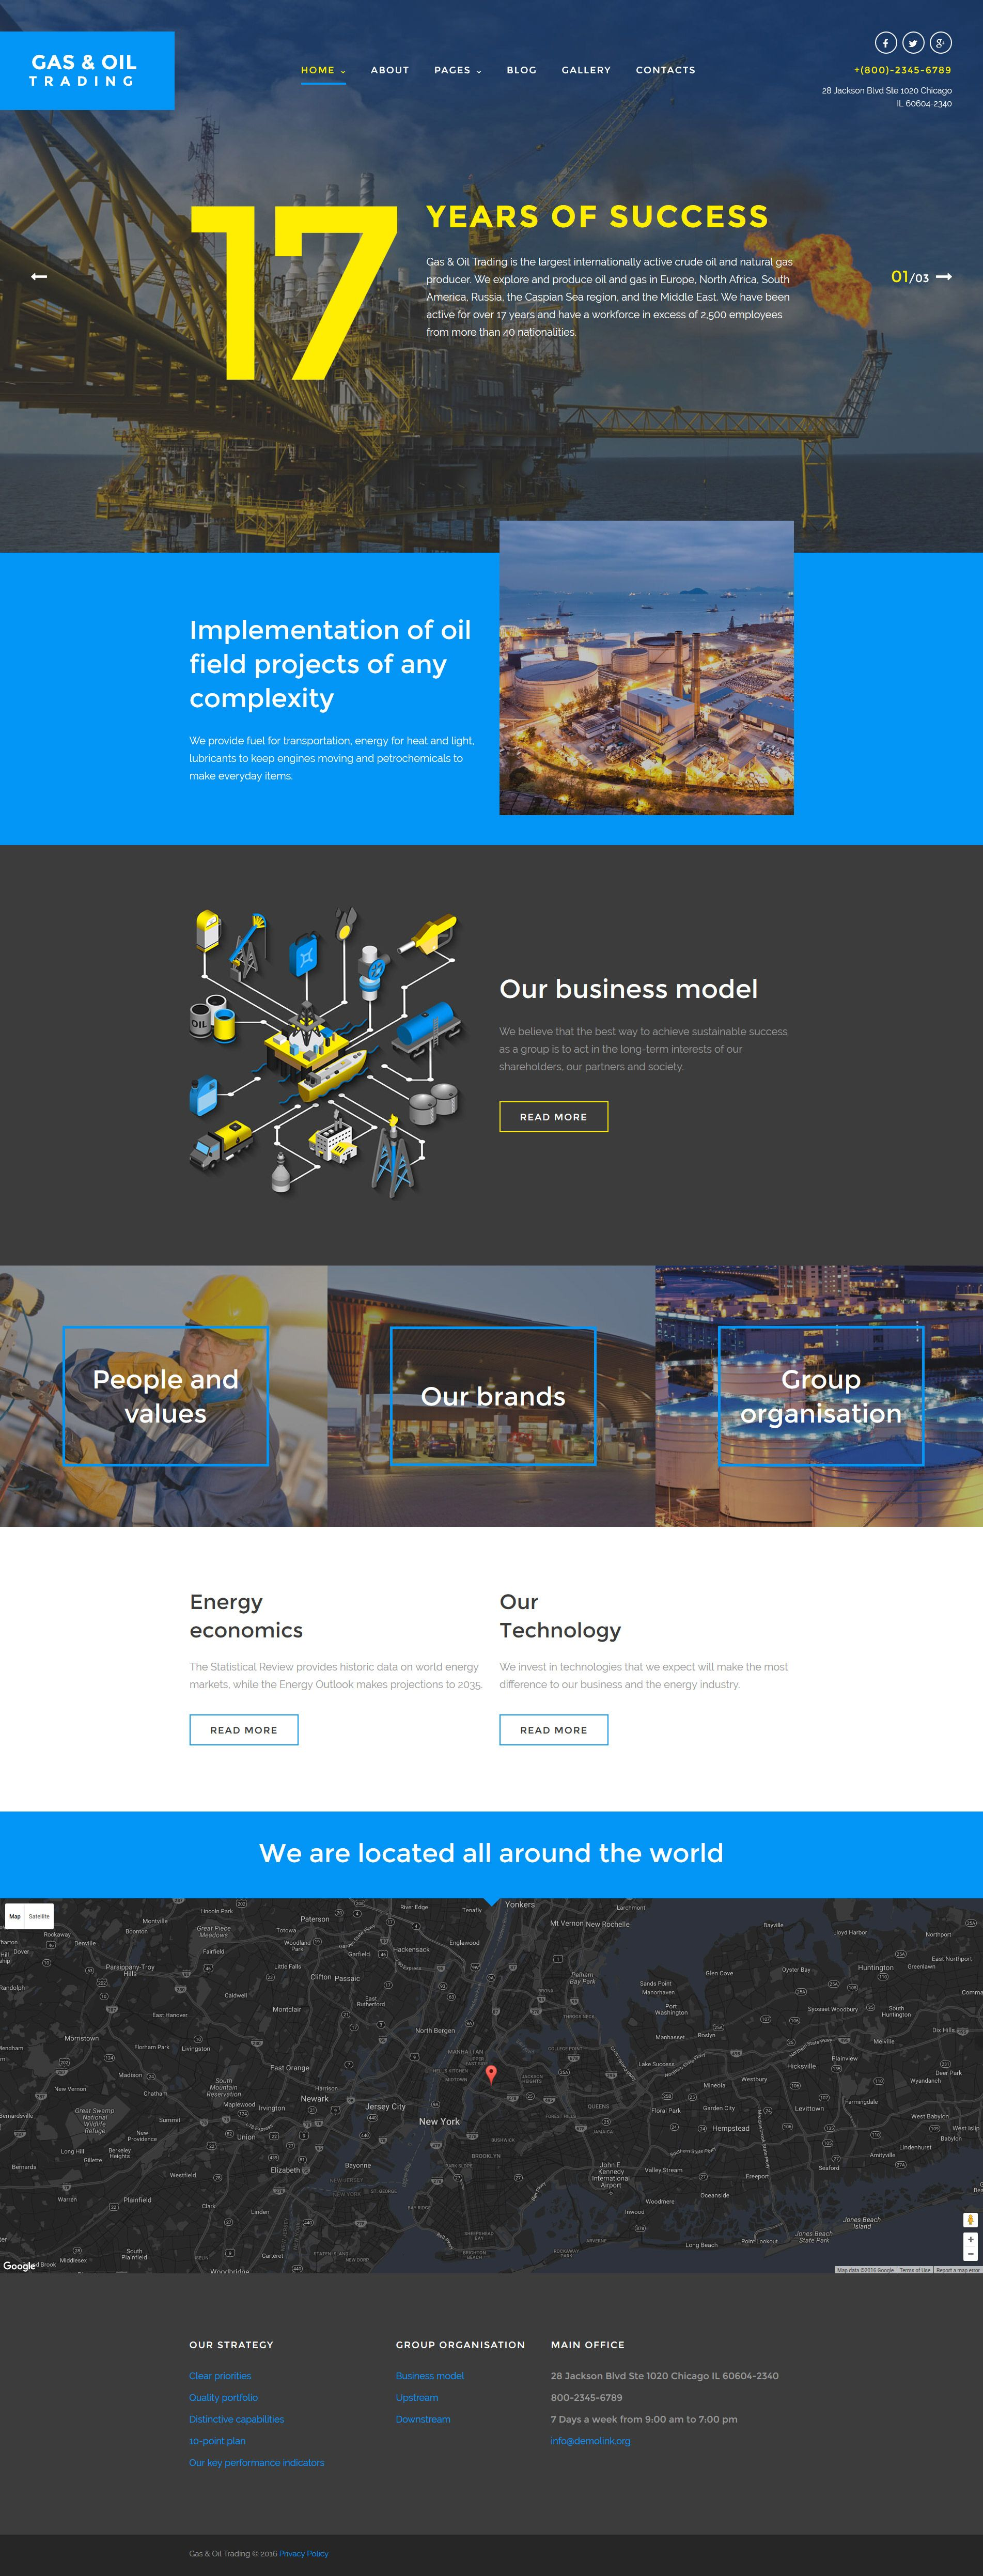 Gas & Oil Trading Joomla Template | Template, Website designs and ...